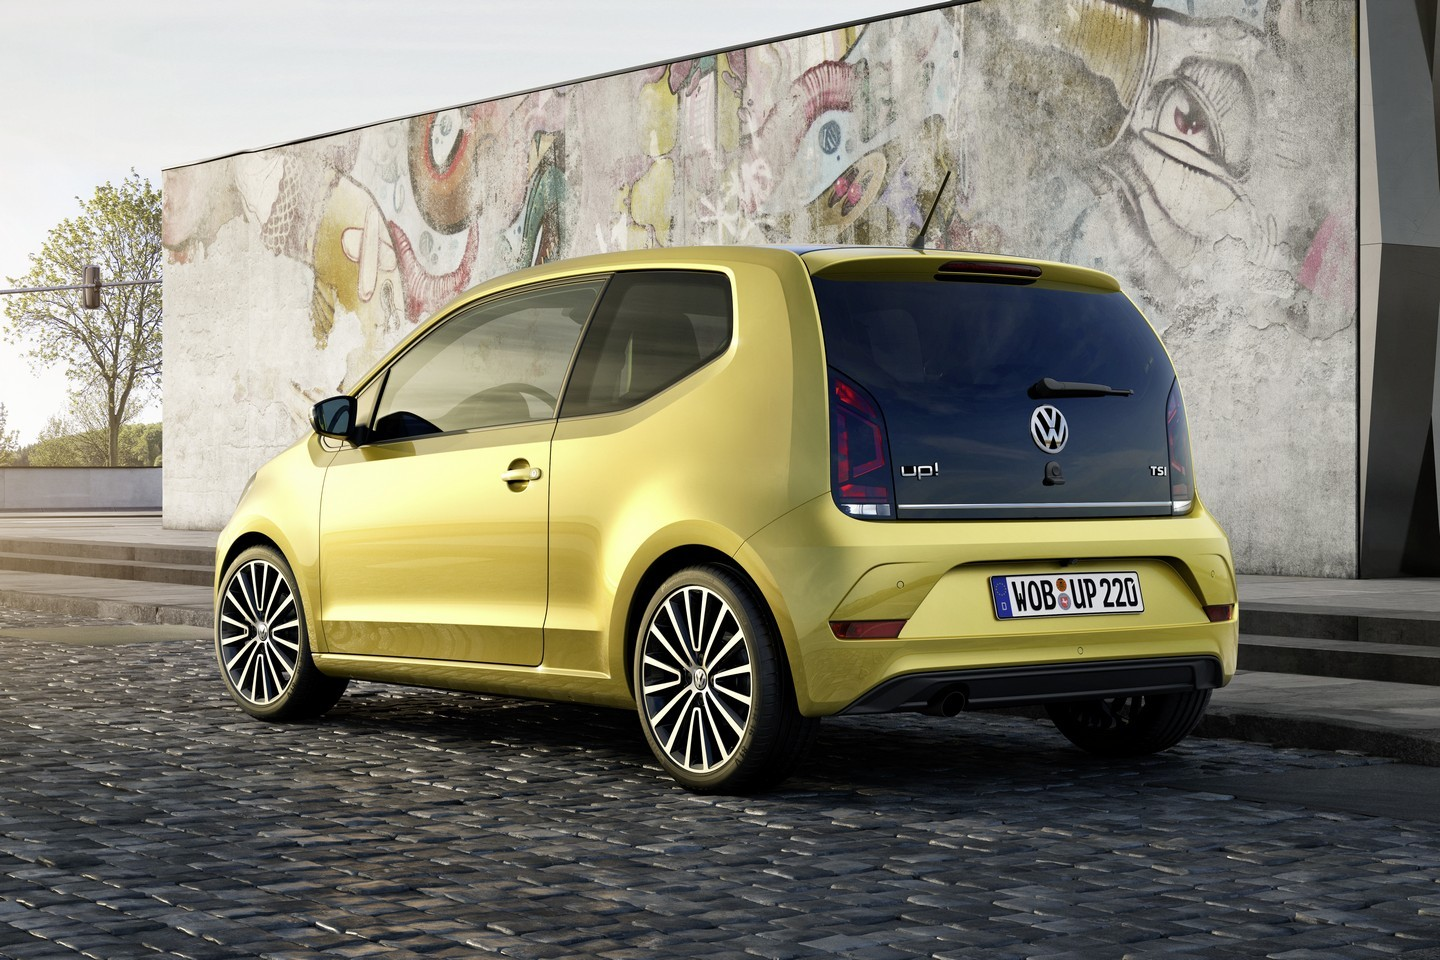 2016 volkswagen up facelift revealed with 1 0 tsi turbo engine and manly grille autoevolution. Black Bedroom Furniture Sets. Home Design Ideas